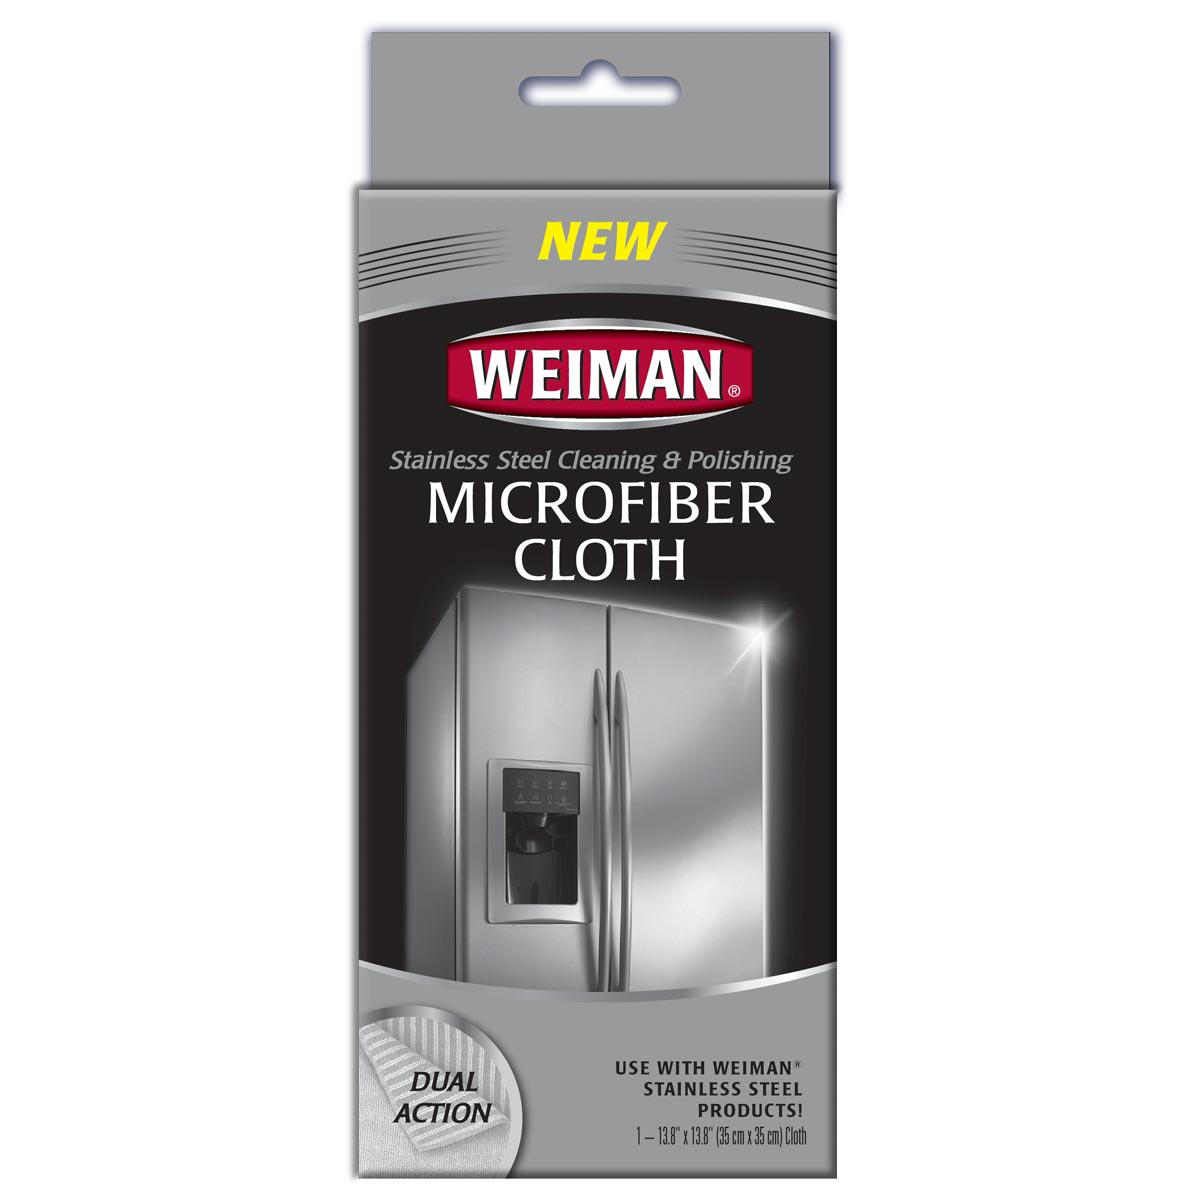 https://googone.com/media/catalog/product/w/e/weiman-microfiber-cloth-for-stainless-steel_front_1_2_1.jpg